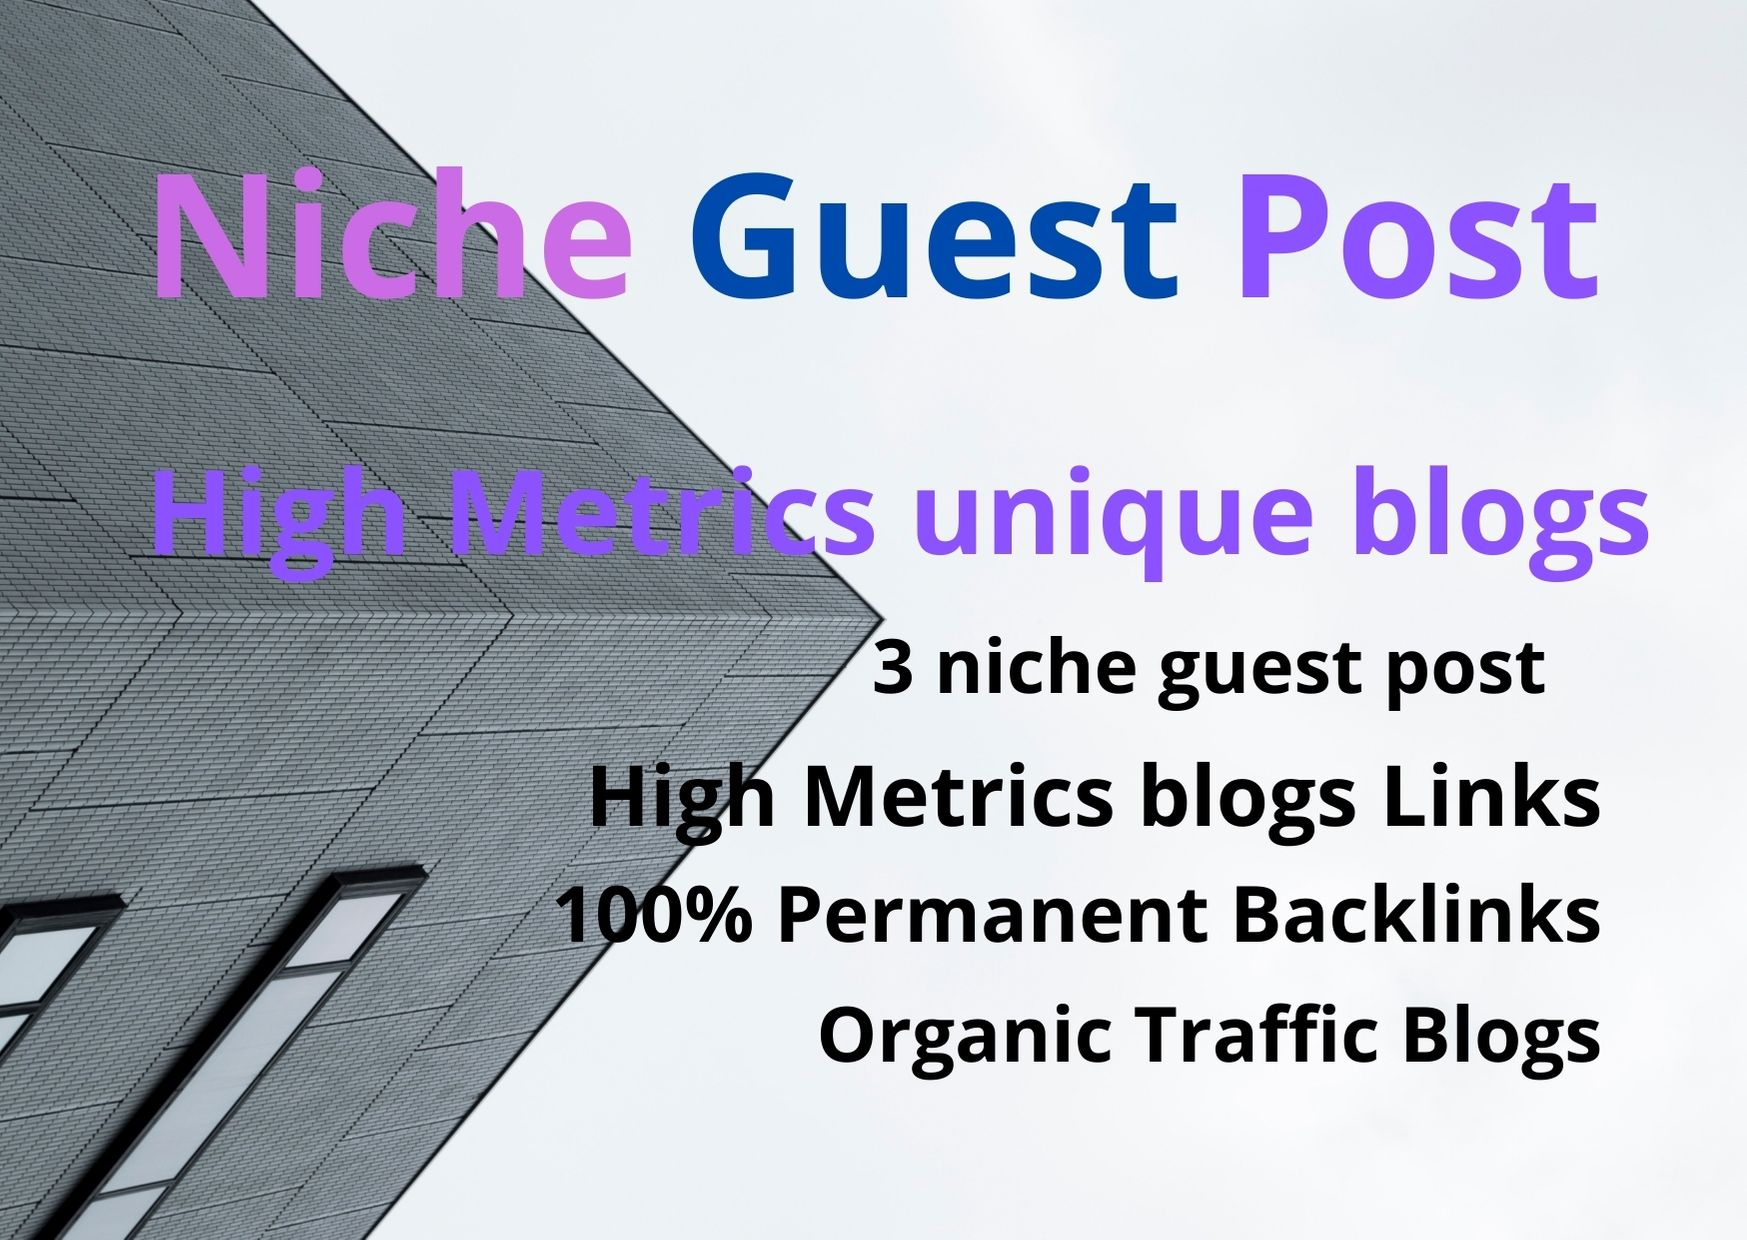 I will publish 3 niche guest post 60 to 80 high quality backlinks